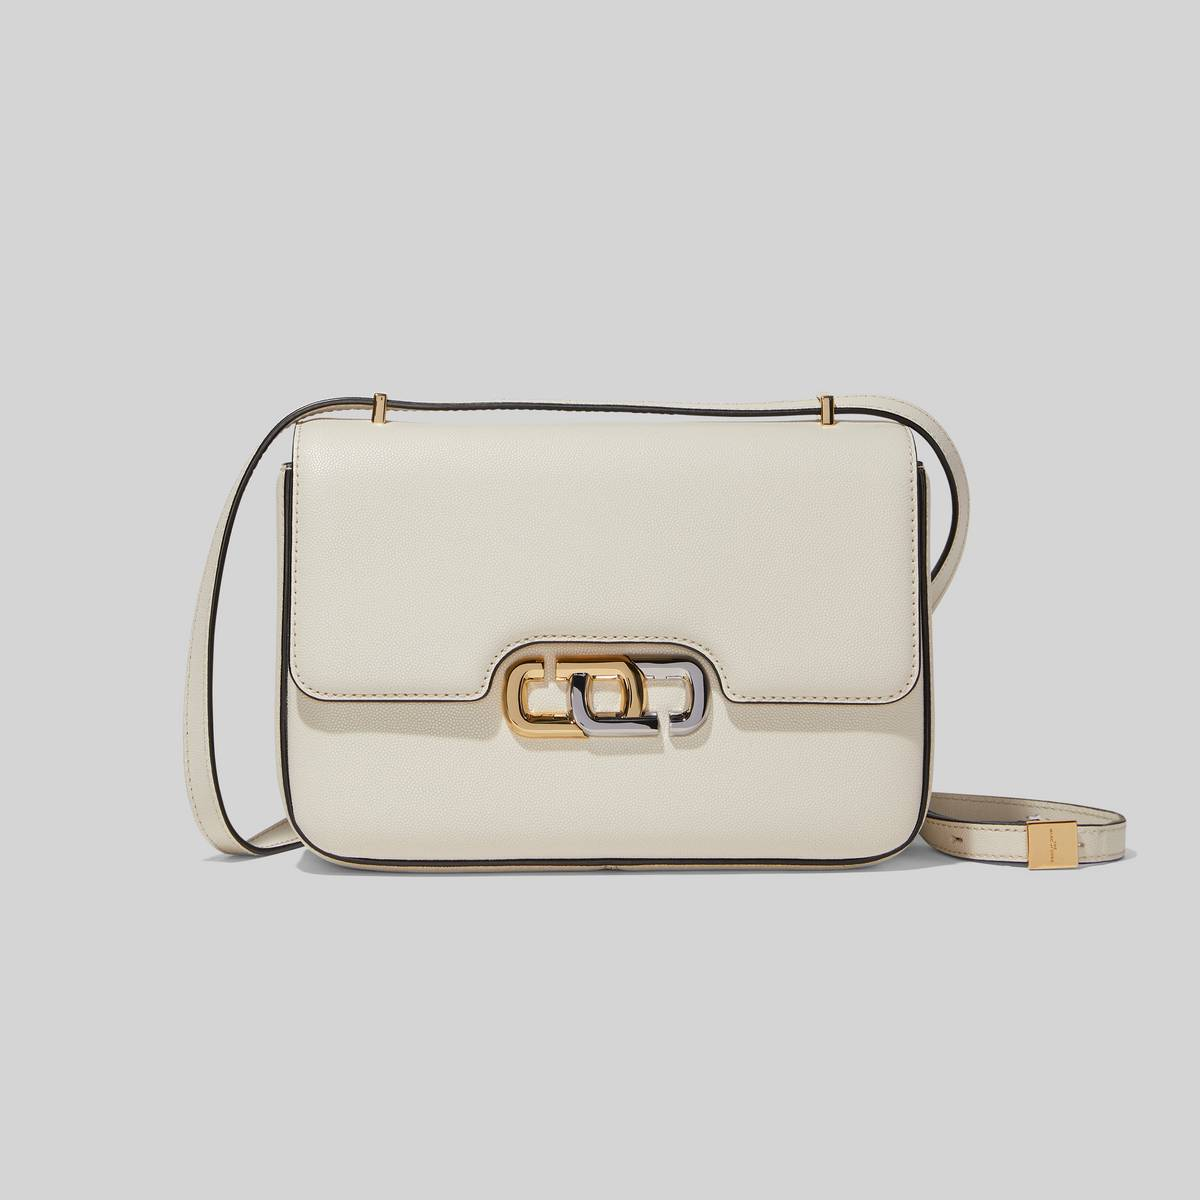 Expect the unexpected from this classic structured shoulder bag with just the right amount of edge. Marked by the contrast between its bungee cord knot detail and refined leather and shape, The J Link features our signature double J, reoriented and reimagined in interlocked mixed metals. | MARC JACOBS Women\\'s The J Link Classic Bag in Ivory